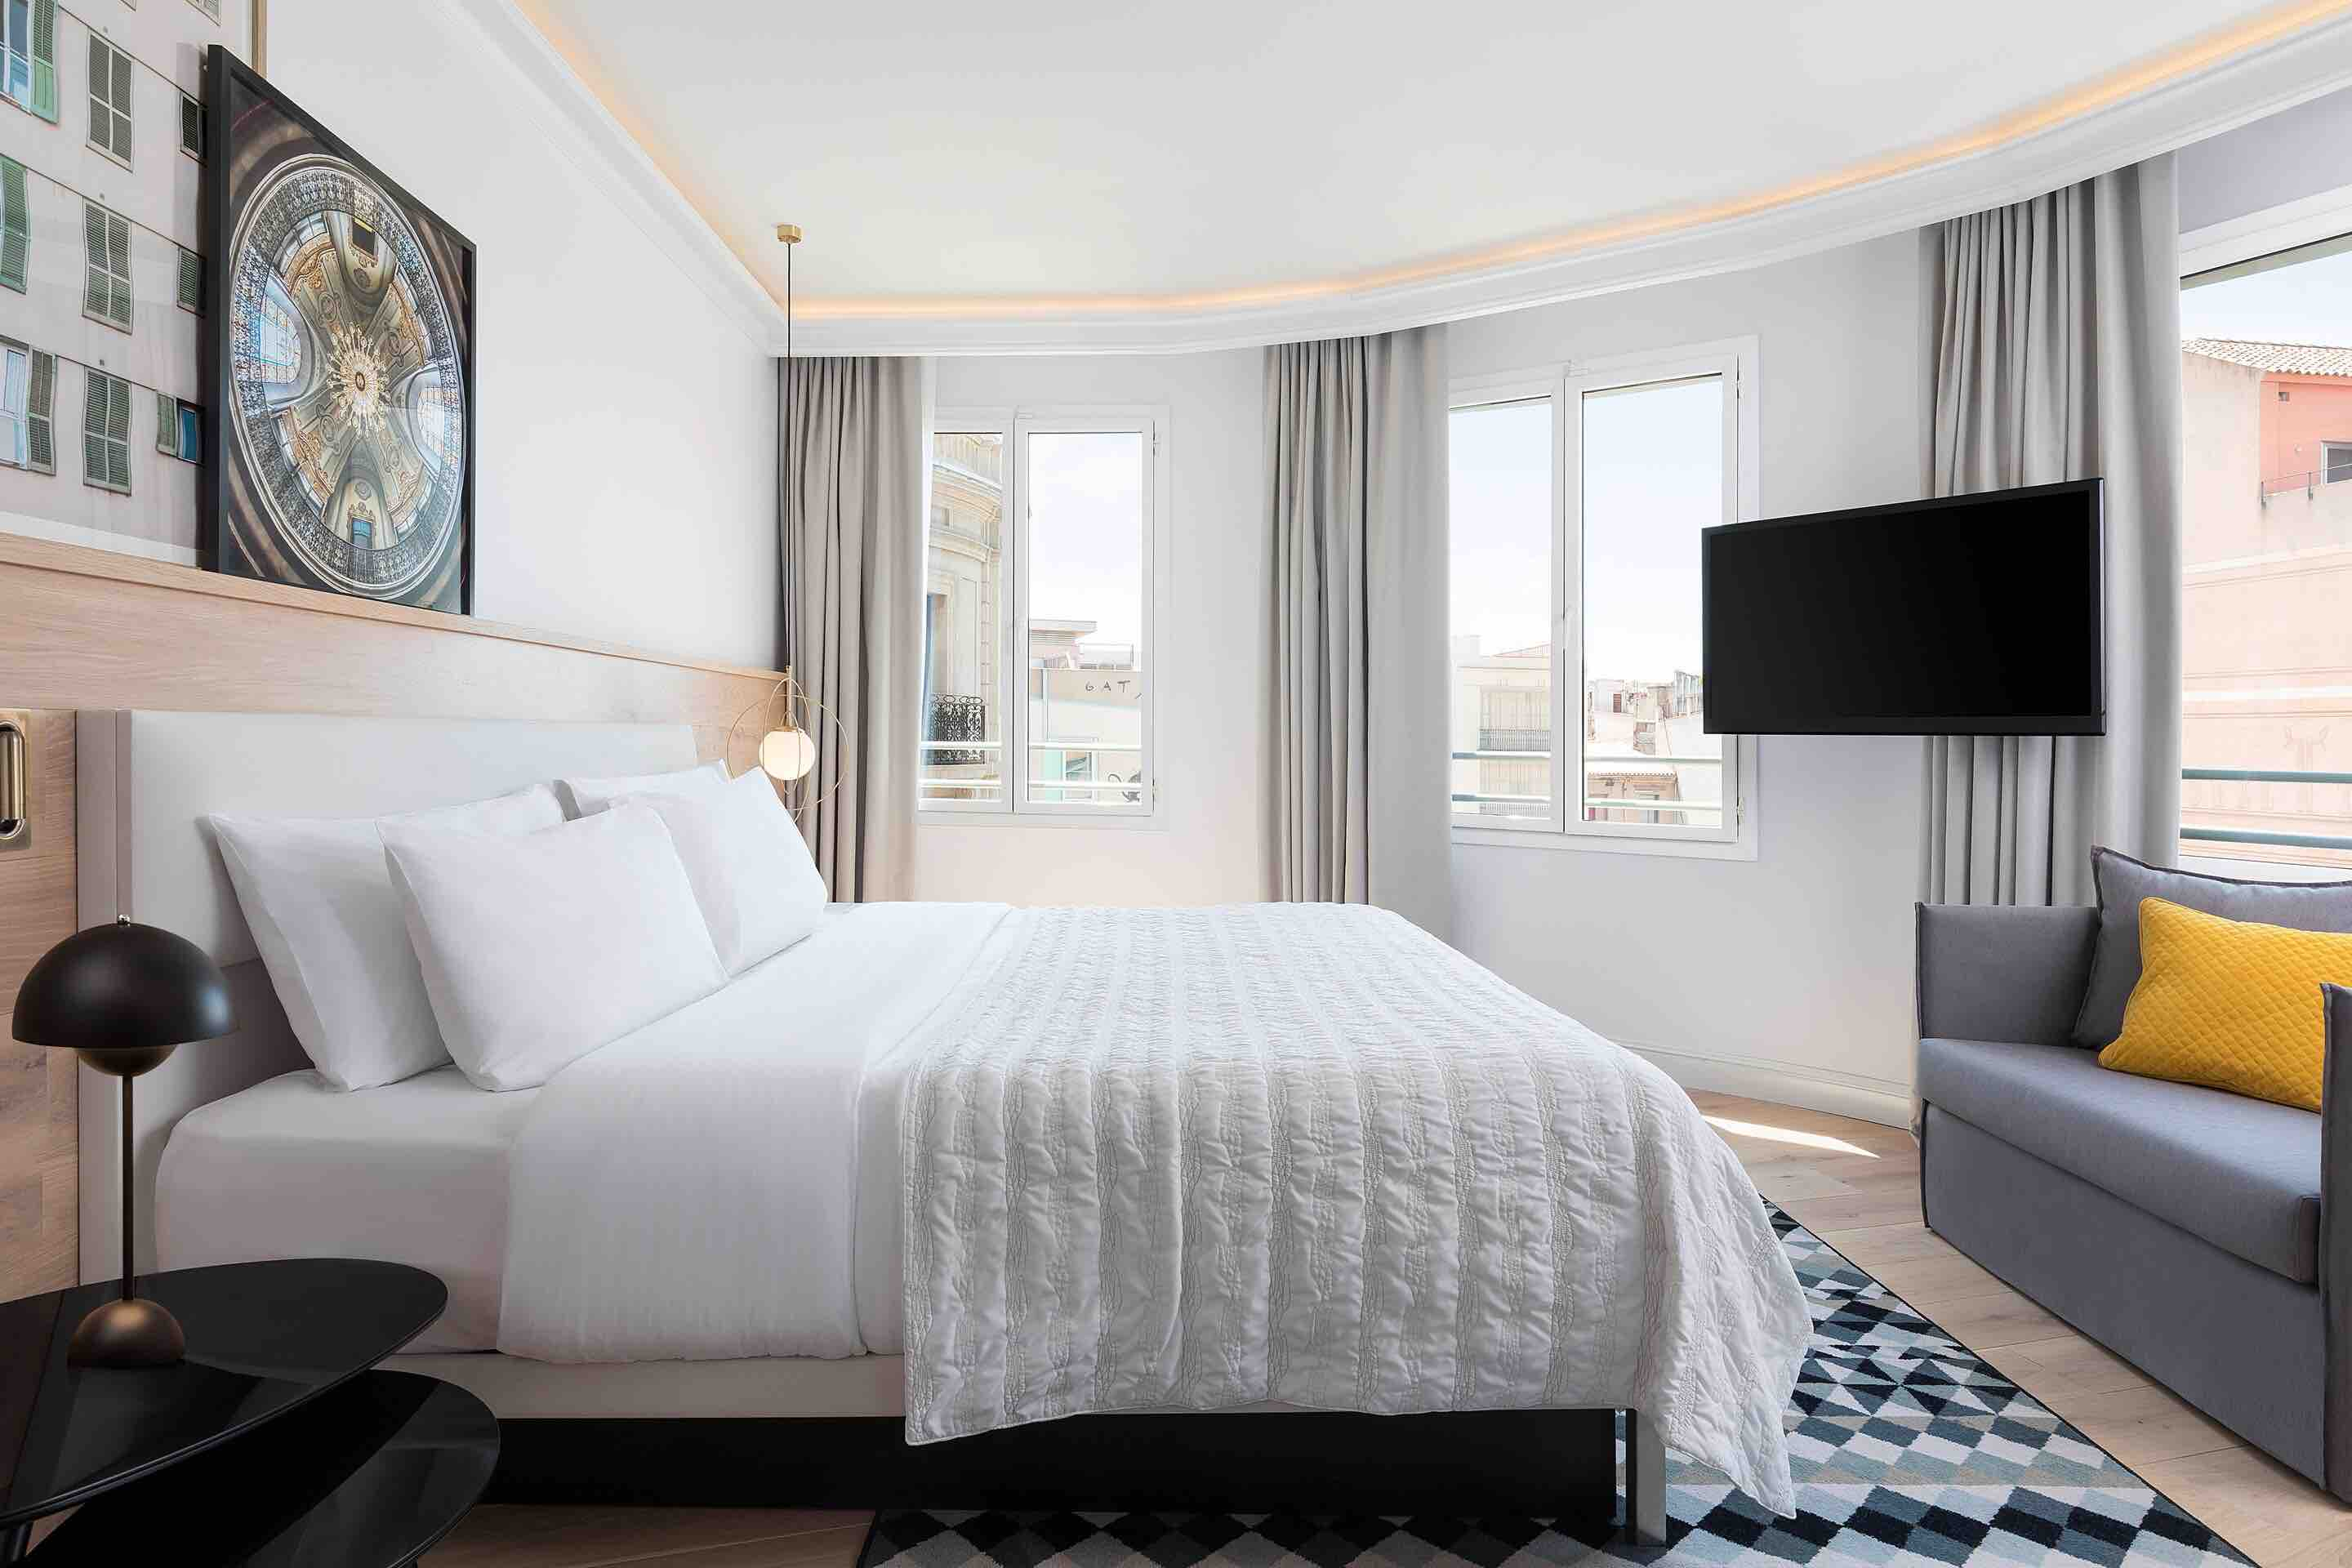 Oone of the top luxury hotels in Barcelona Le Meridien Barcelona showing room with city views